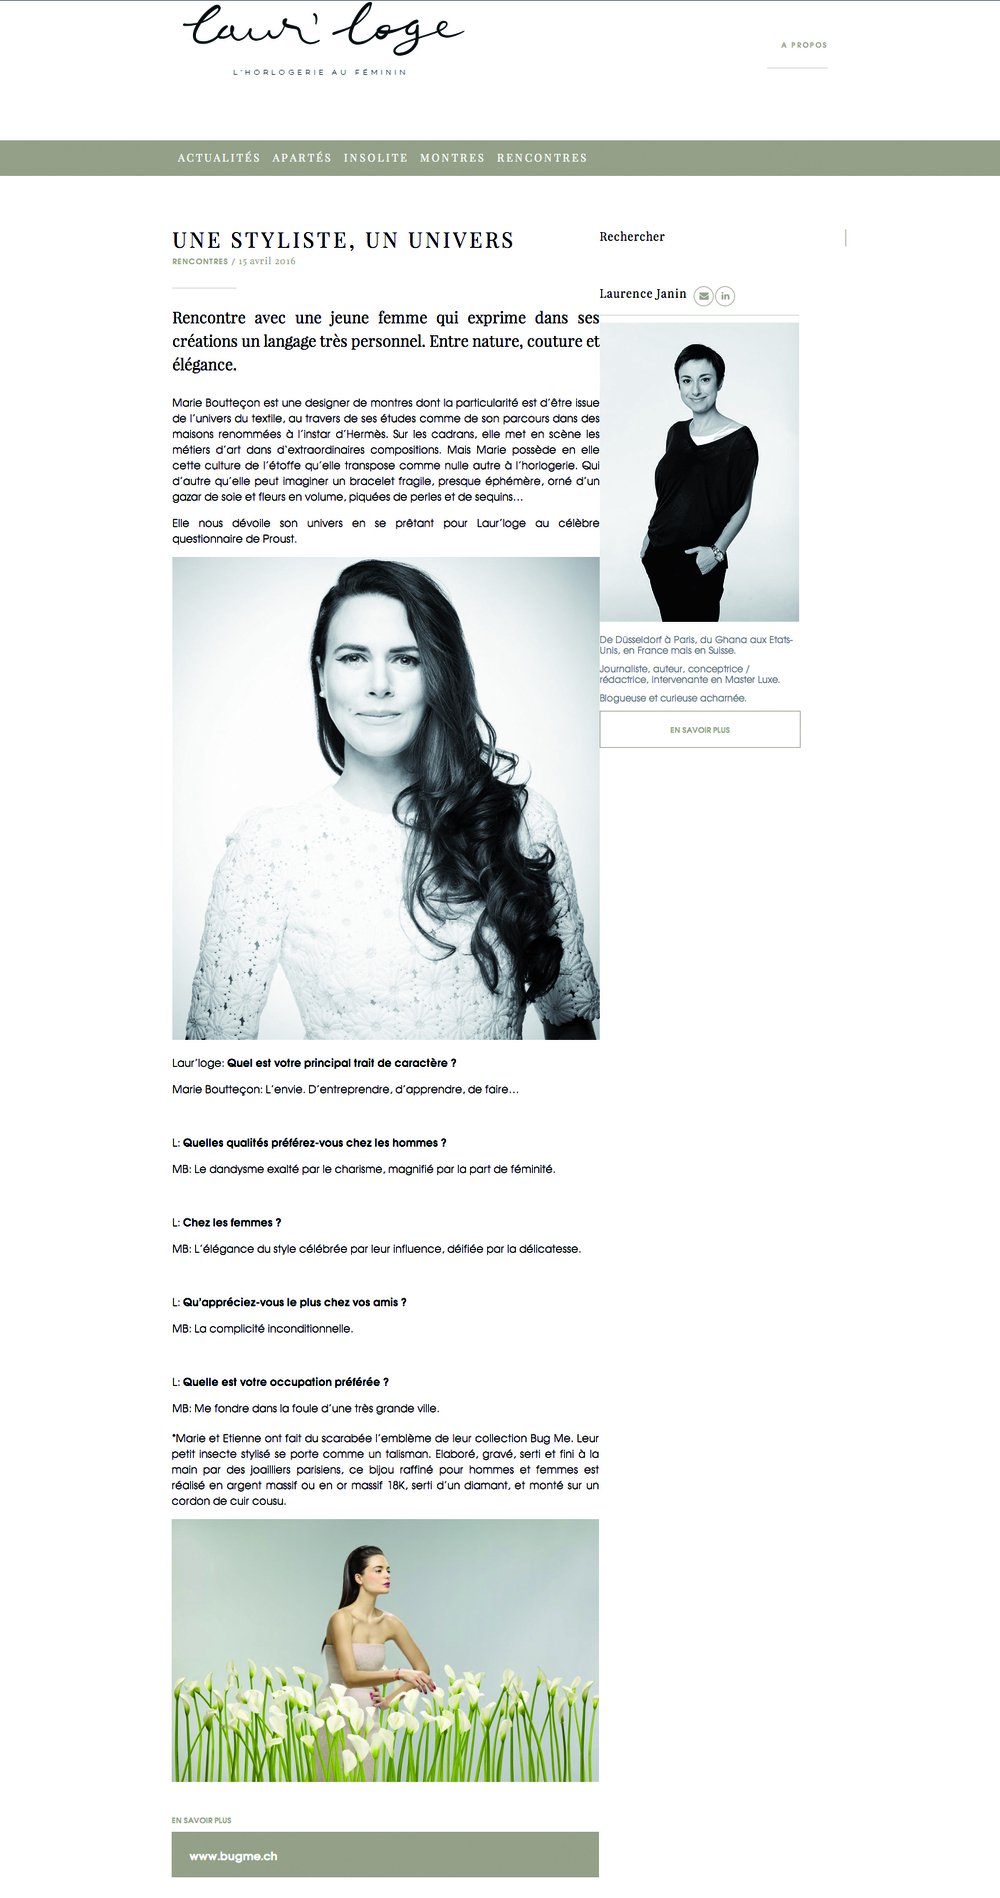 Here is the article from Laur'loge, by Laurence Janin, about our 'idea laboratory' and our creation!  I suggest you read the article in full and Marie's Proust questionnaire on:  http://www.laurloge.com/une-styliste-un-univers/